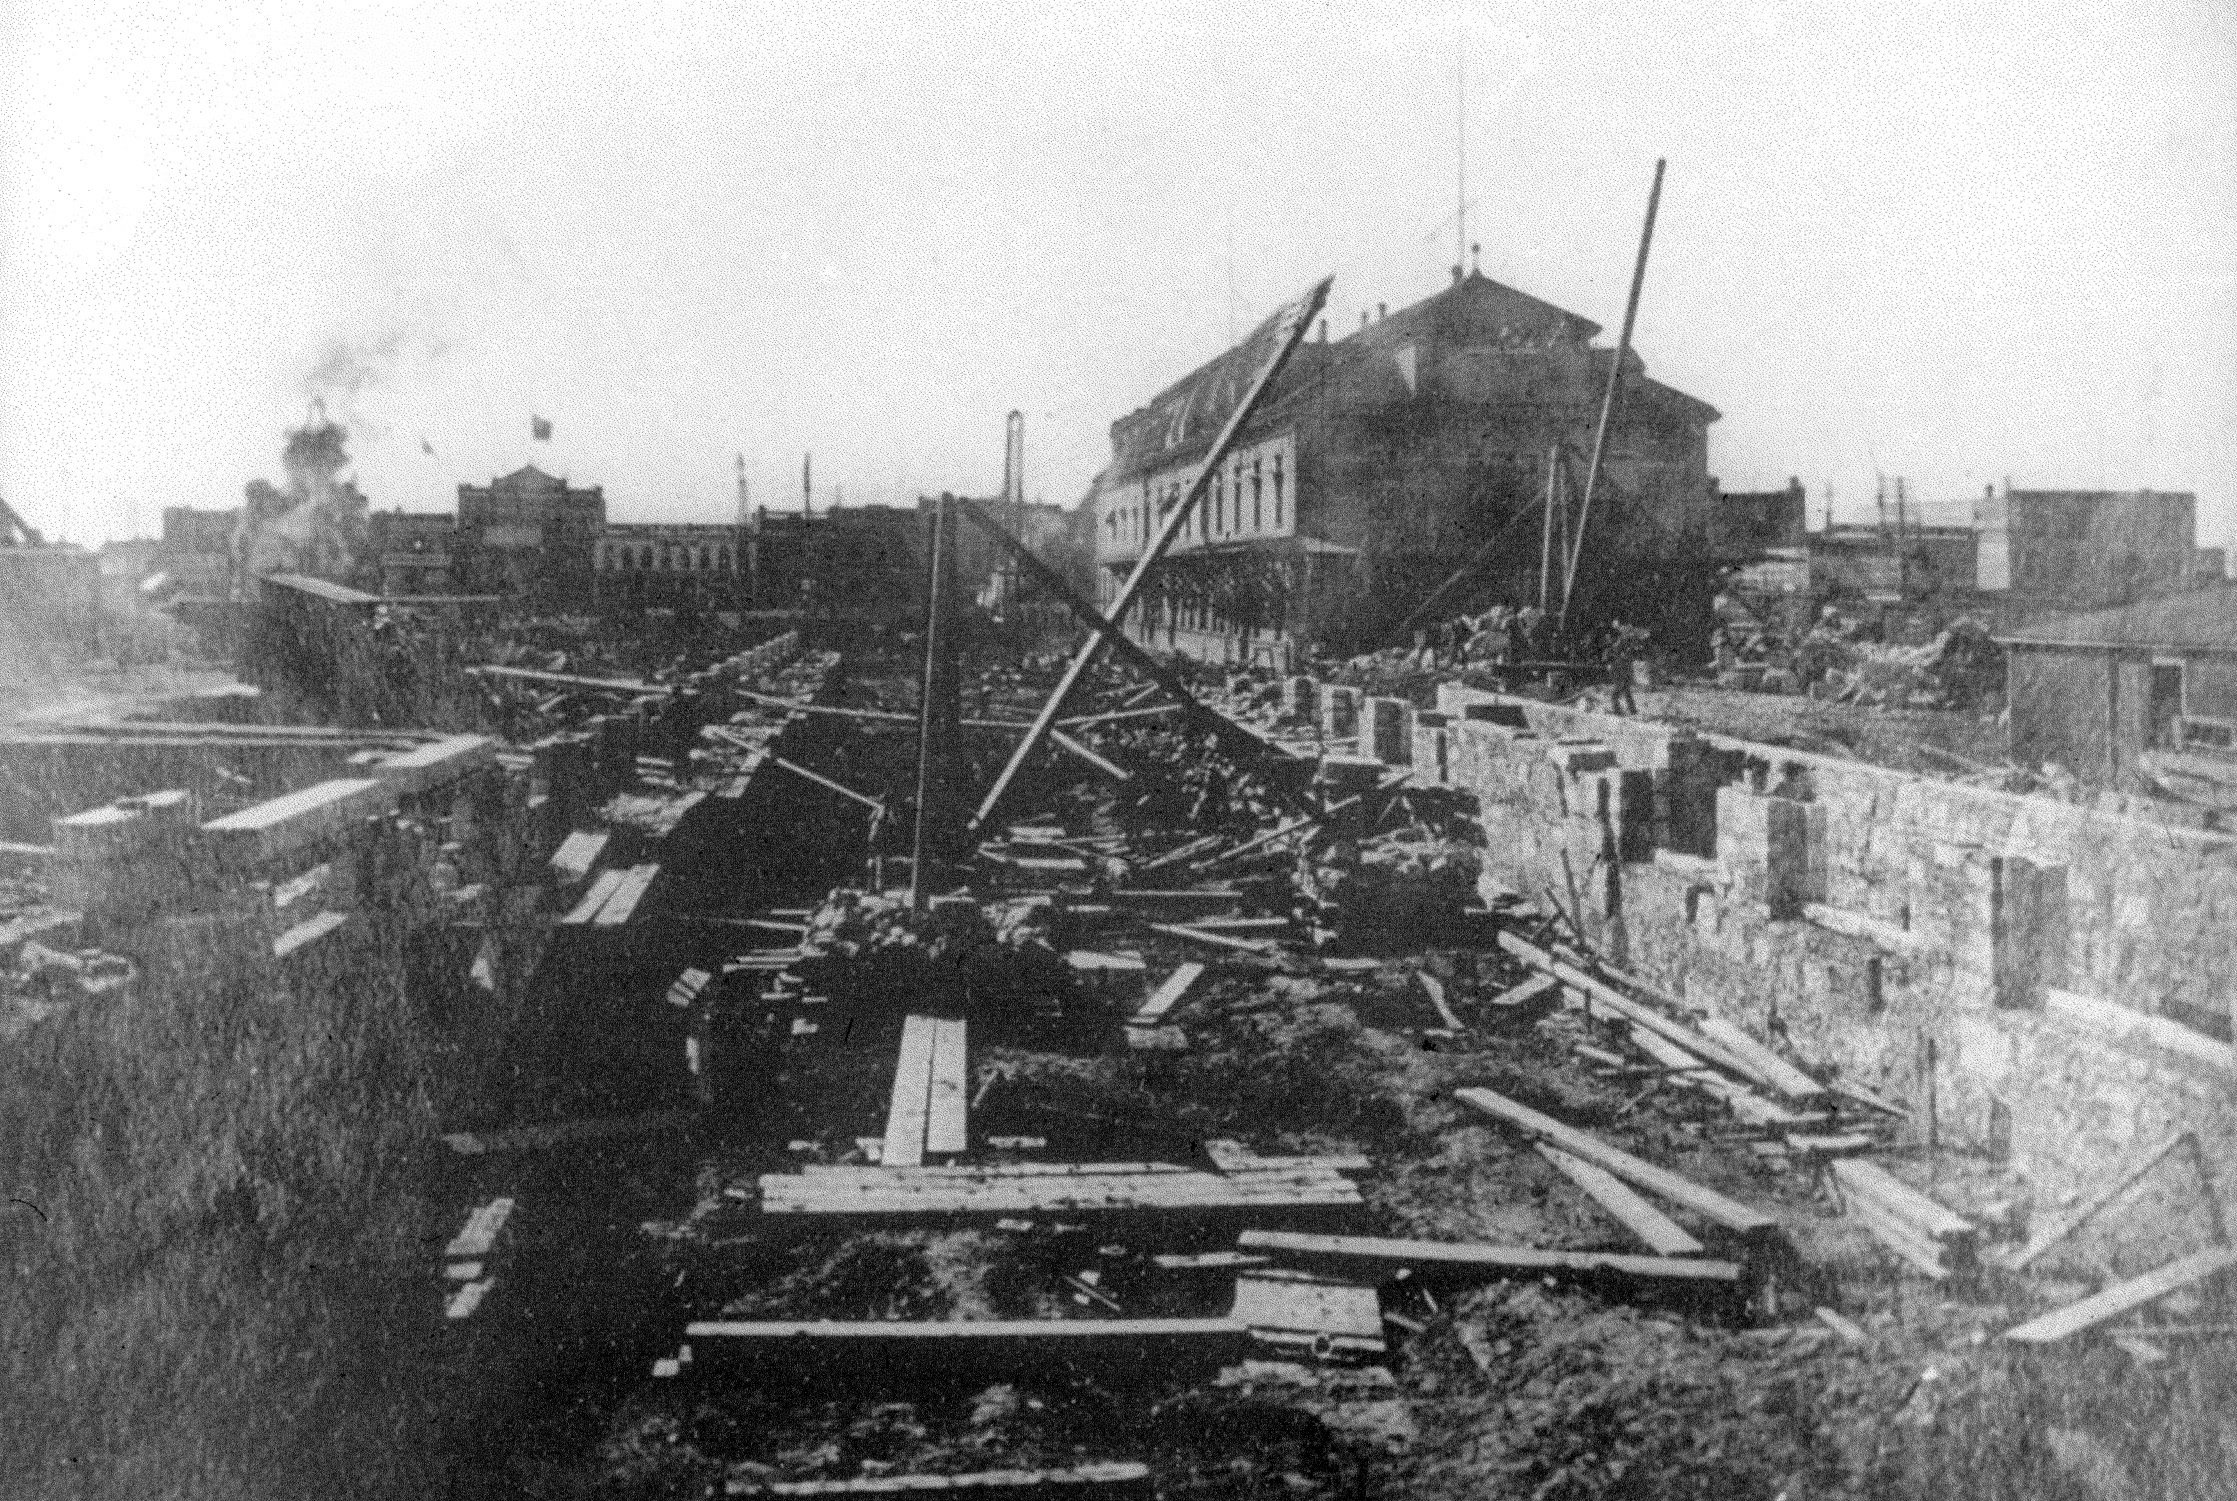 Construction of the Canadian Pacific Railway Station in Winnipeg was finished in 1881. (Western Canada Pictorial Index)